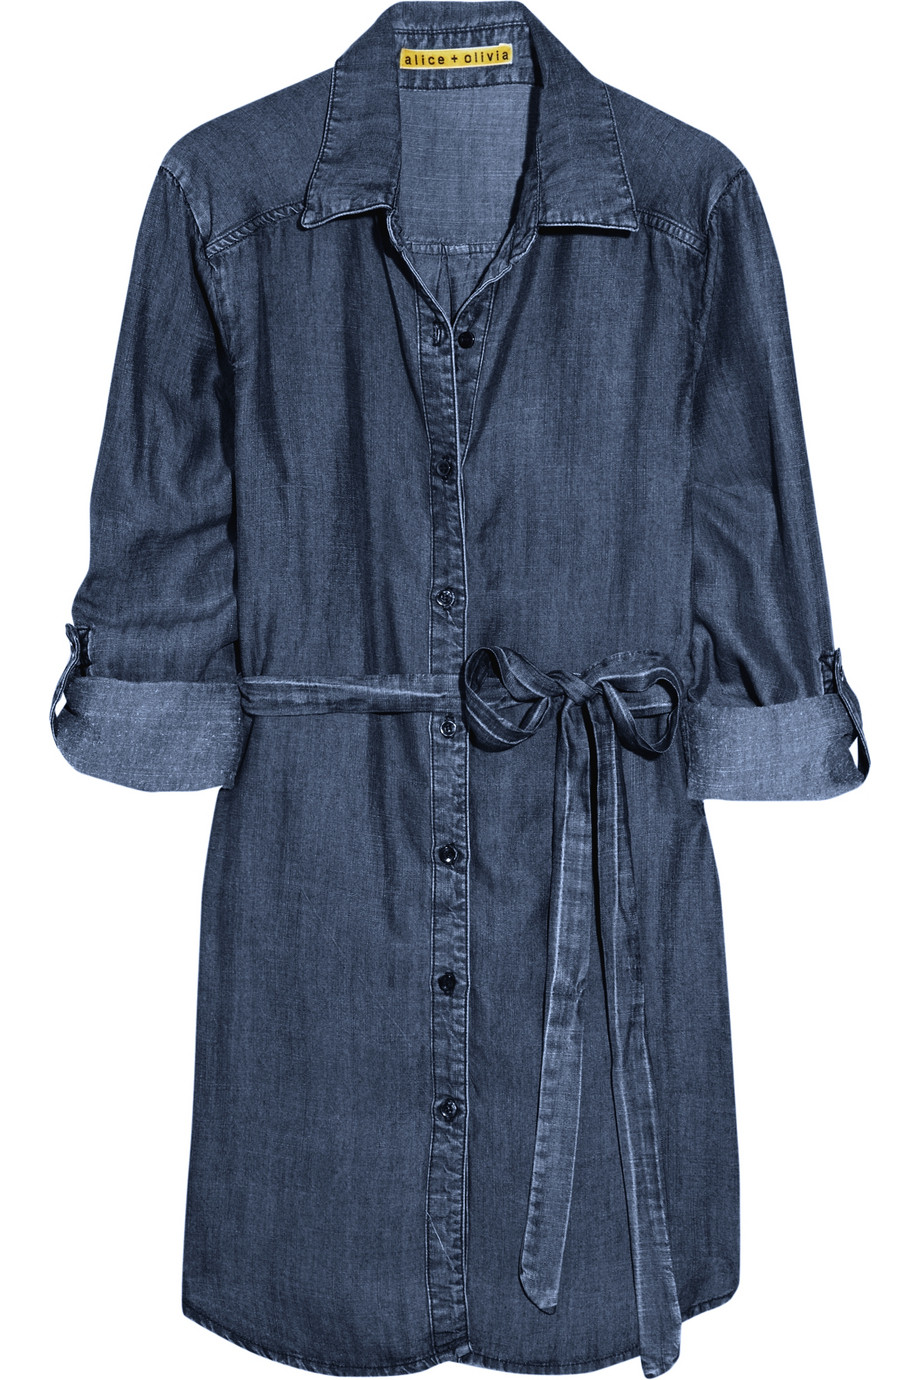 Alice Olivia Belted Chambray Shirt Dress In Blue Lyst